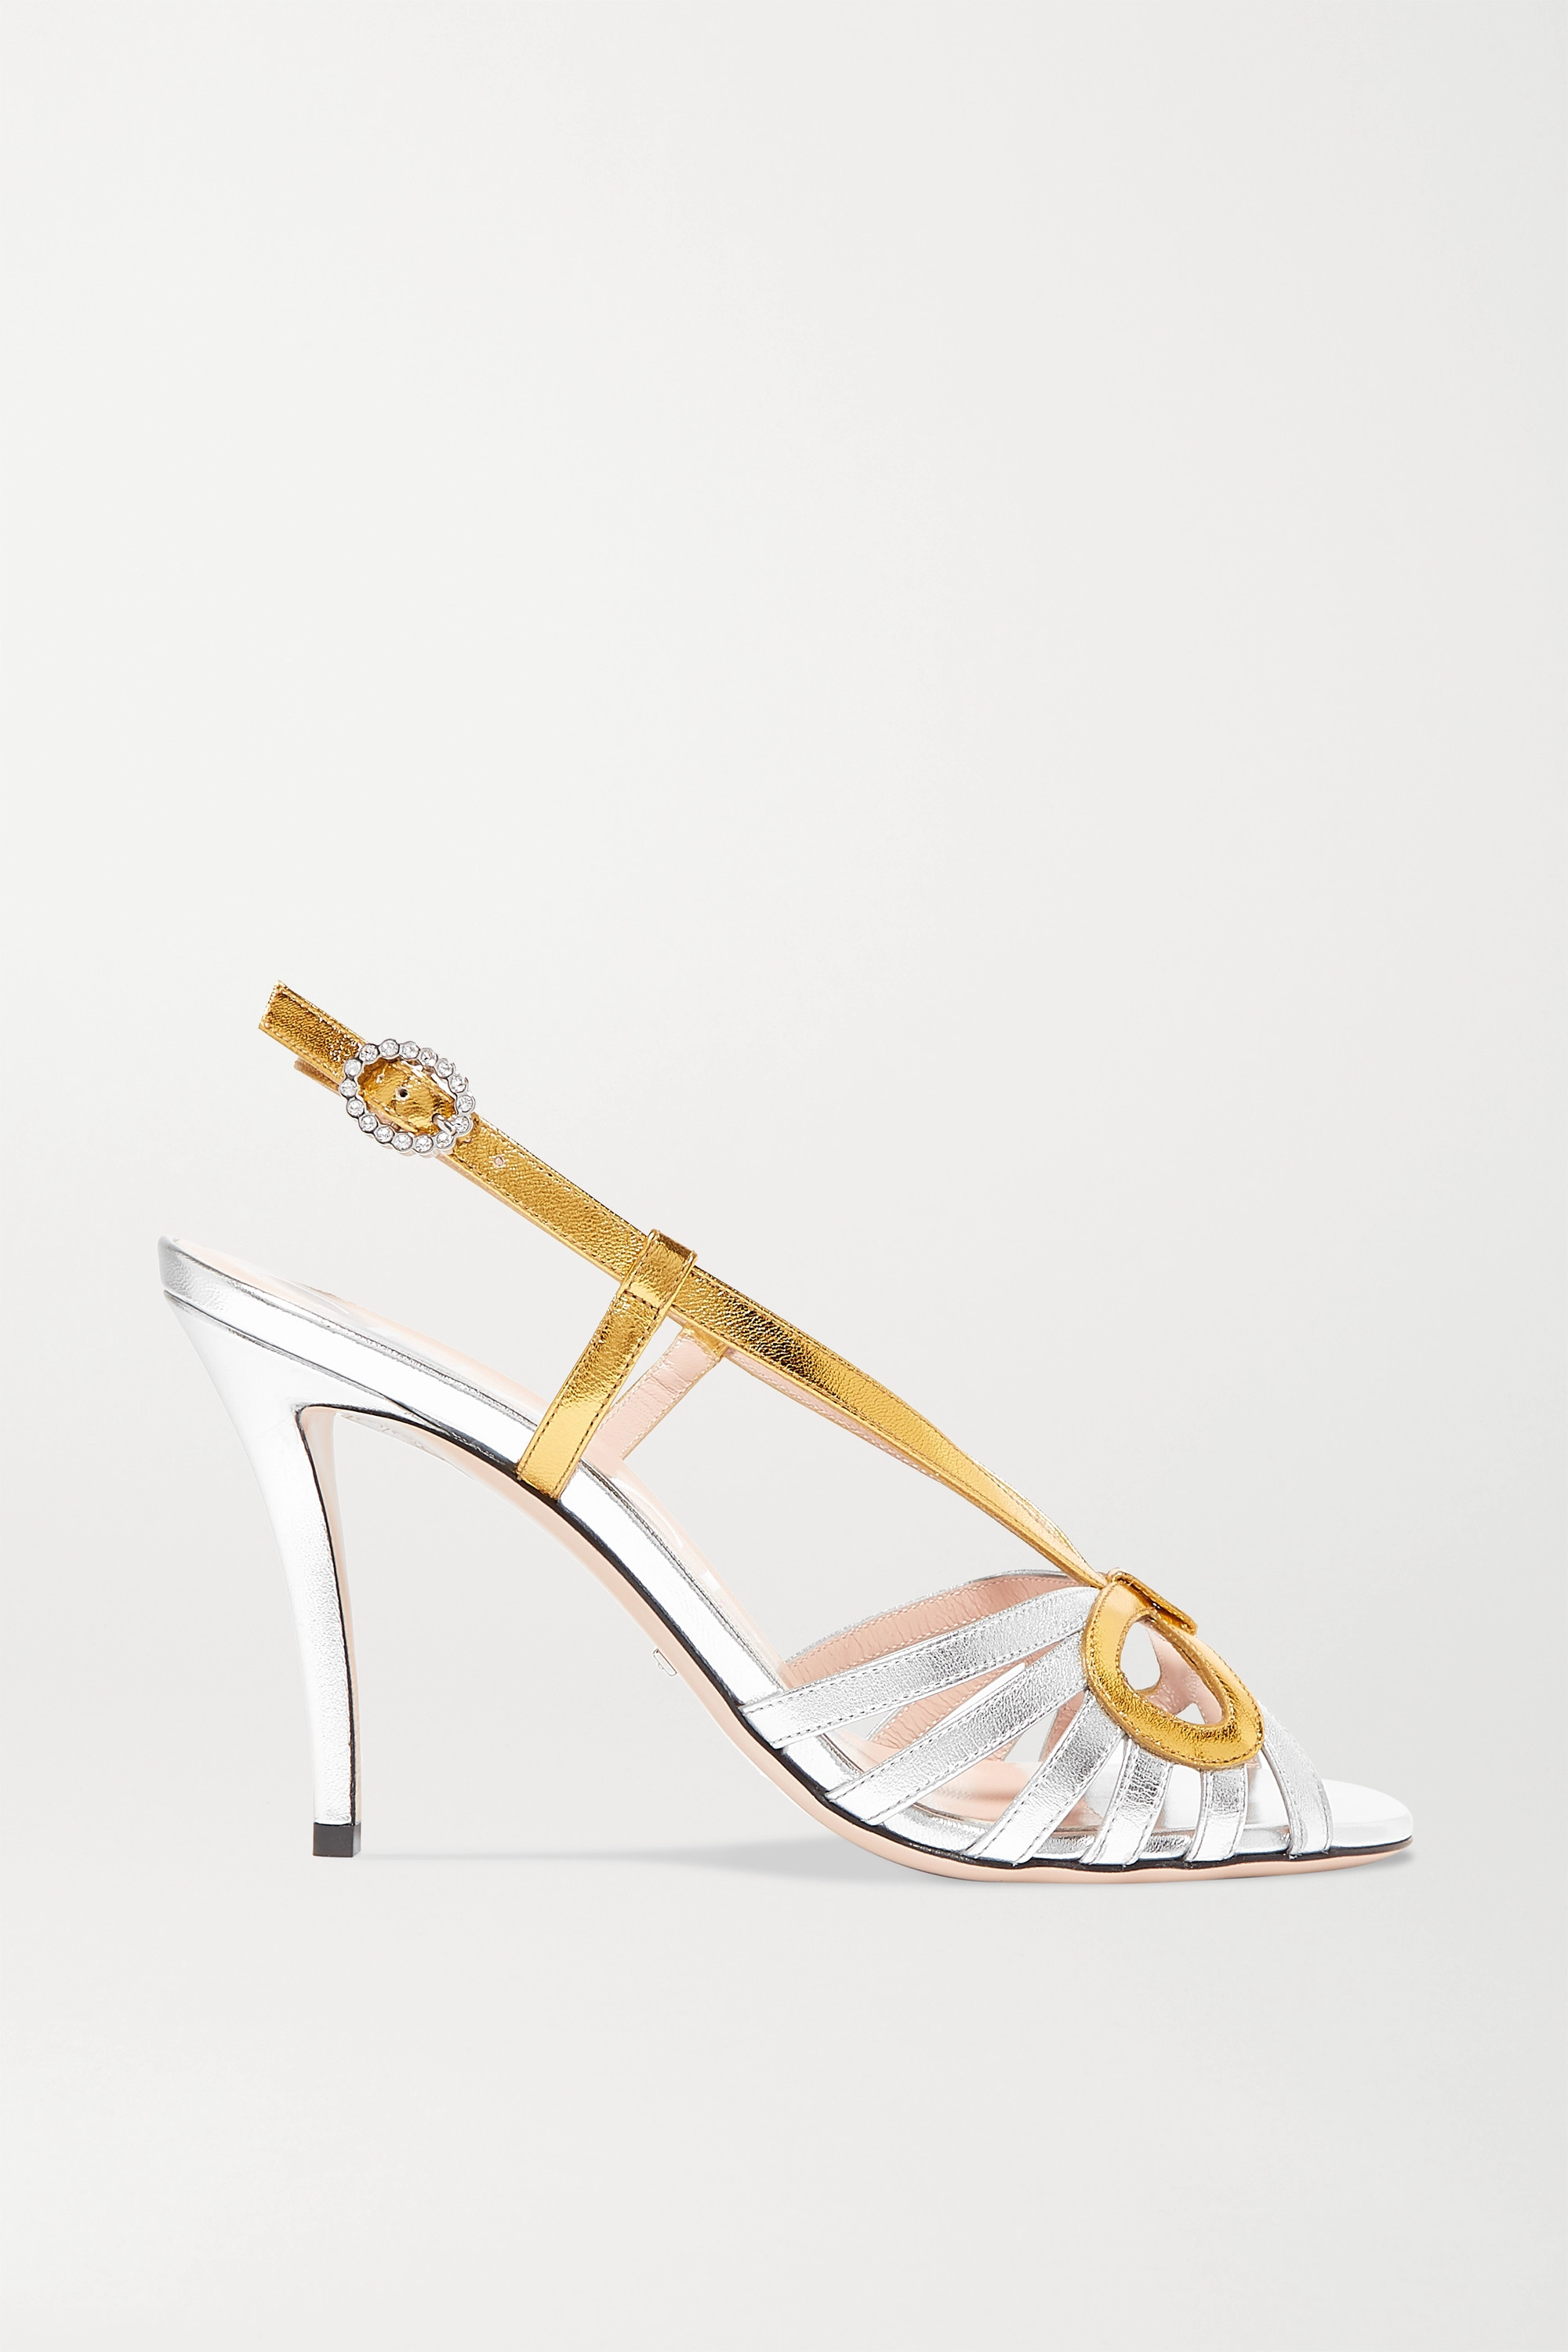 Gucci Crystal-embellished metallic leather sandals